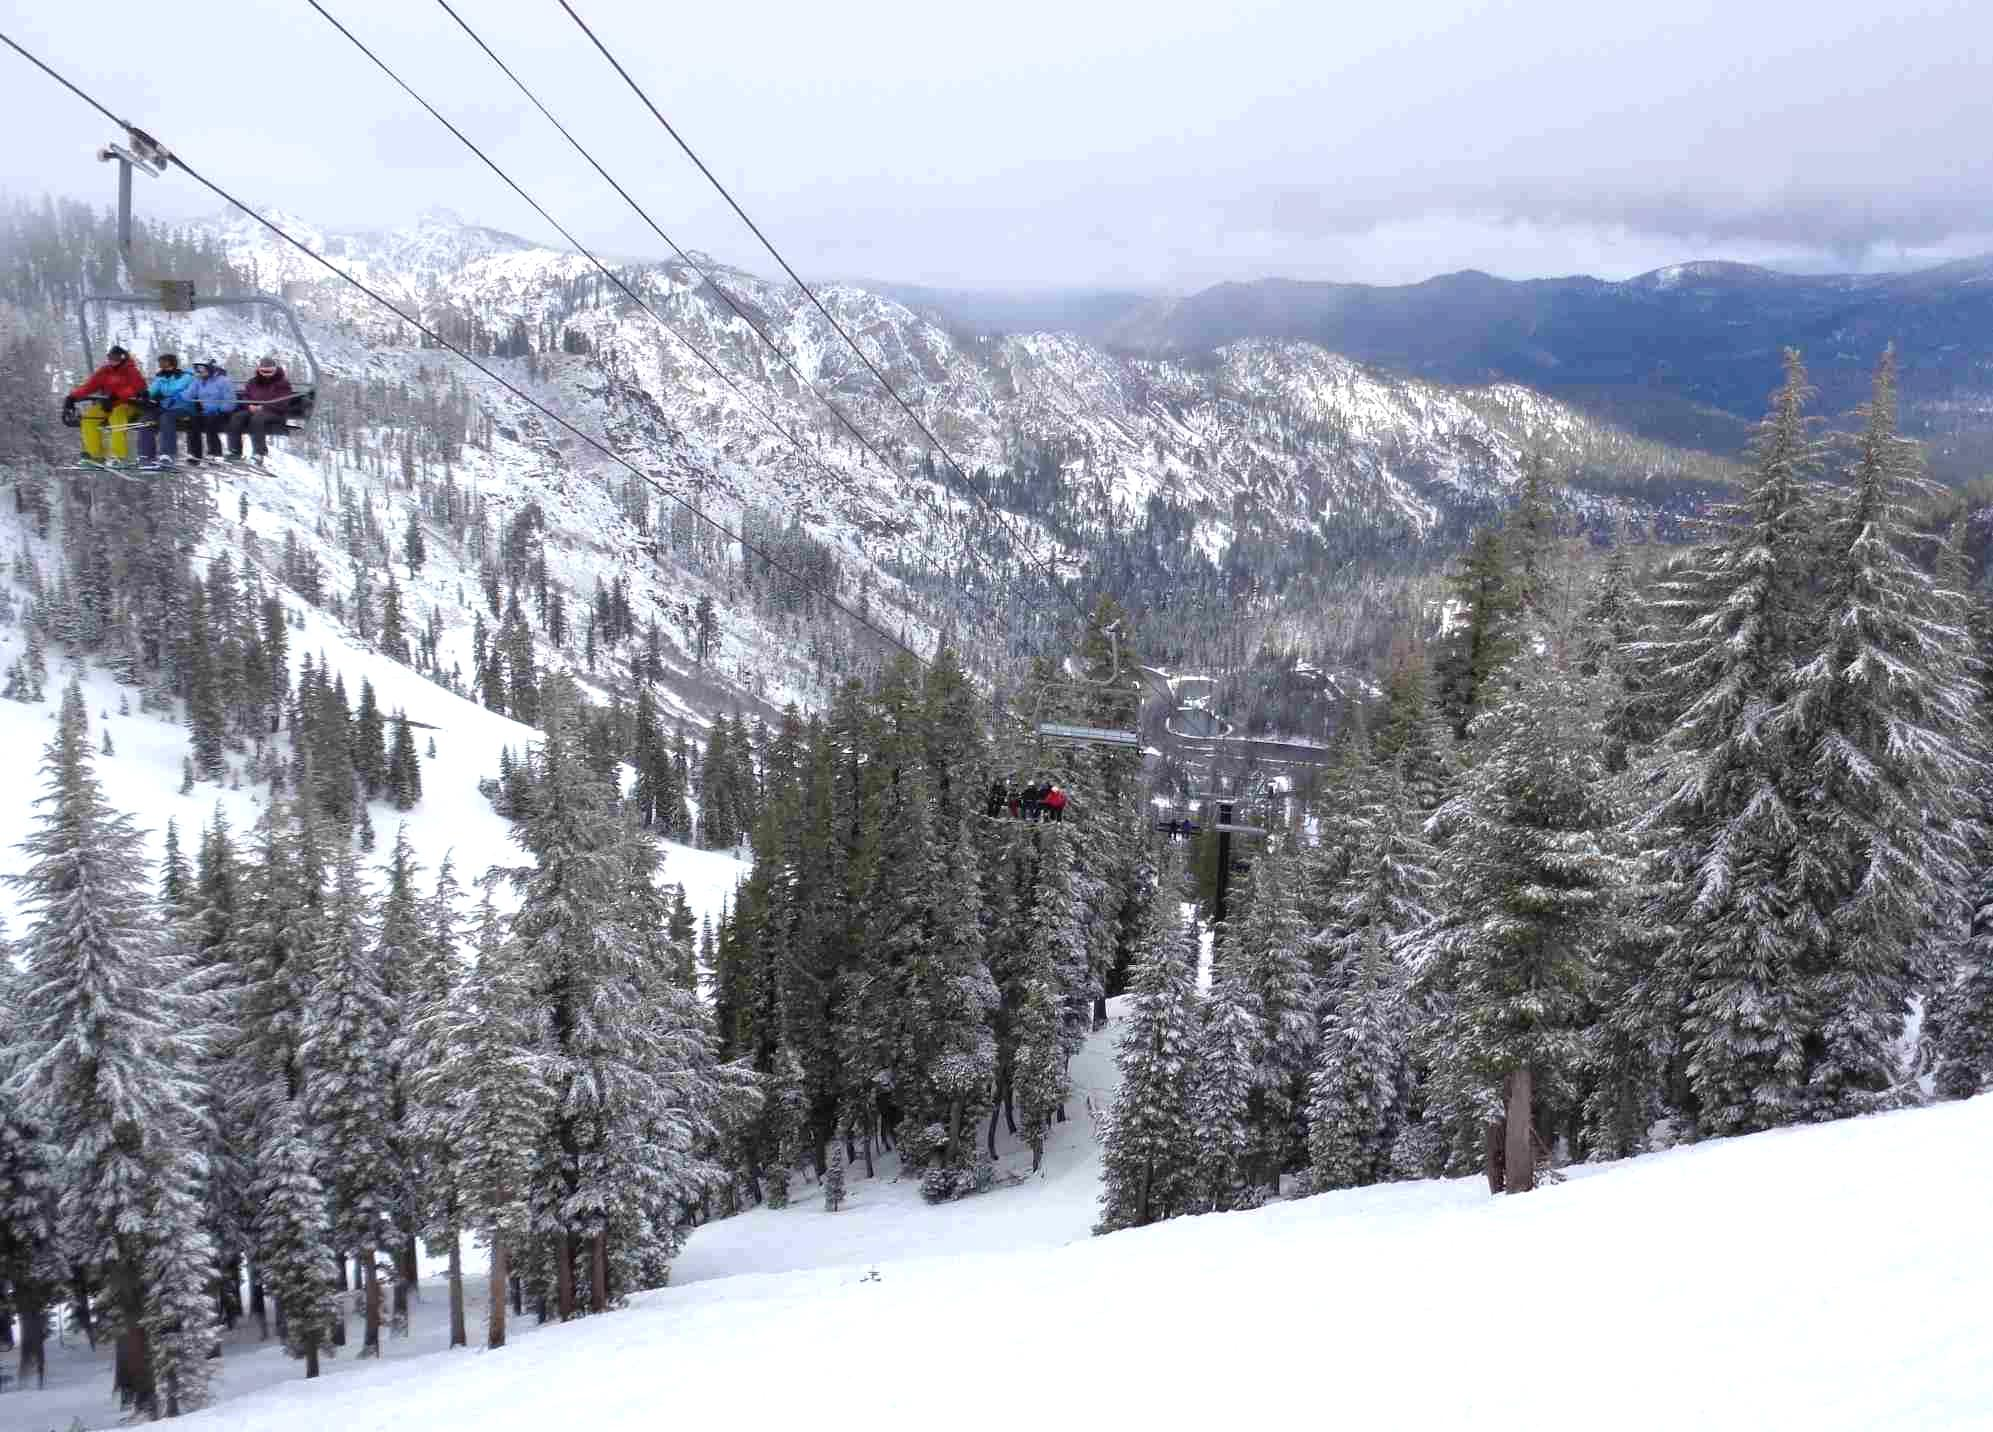 Looking down the Summit Express